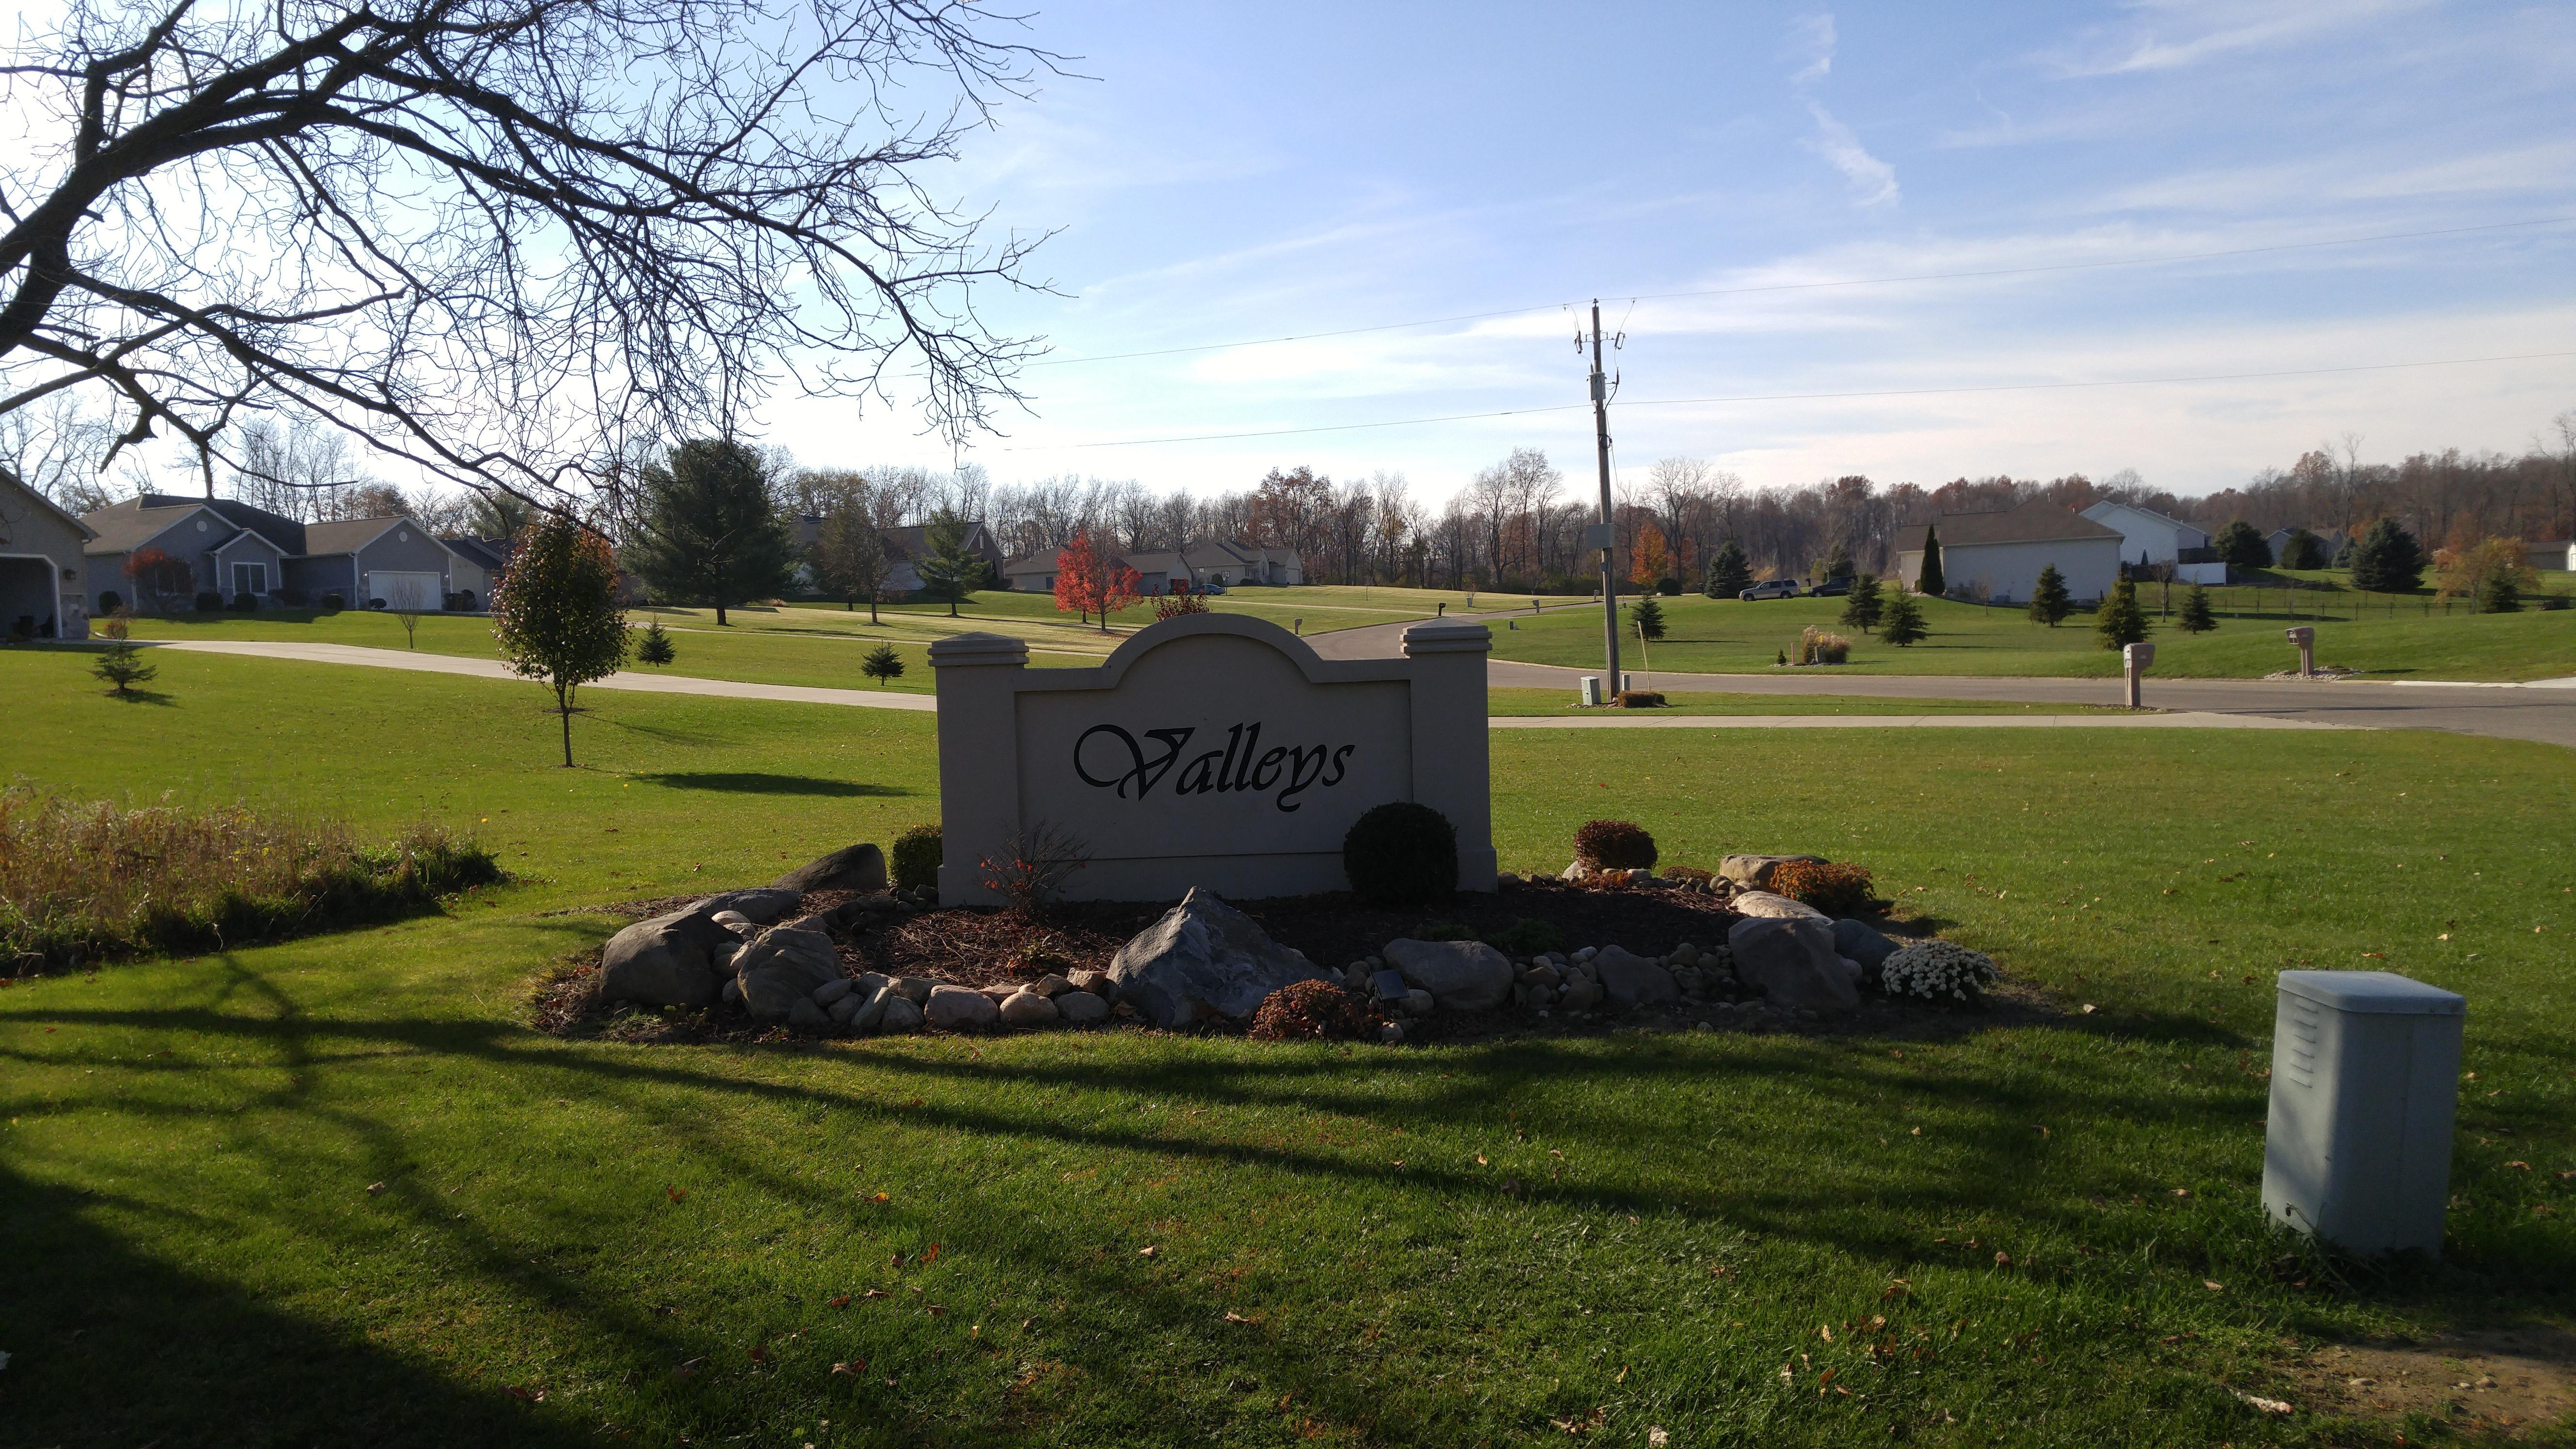 'The Valleys' by CVE Homes in Jackson